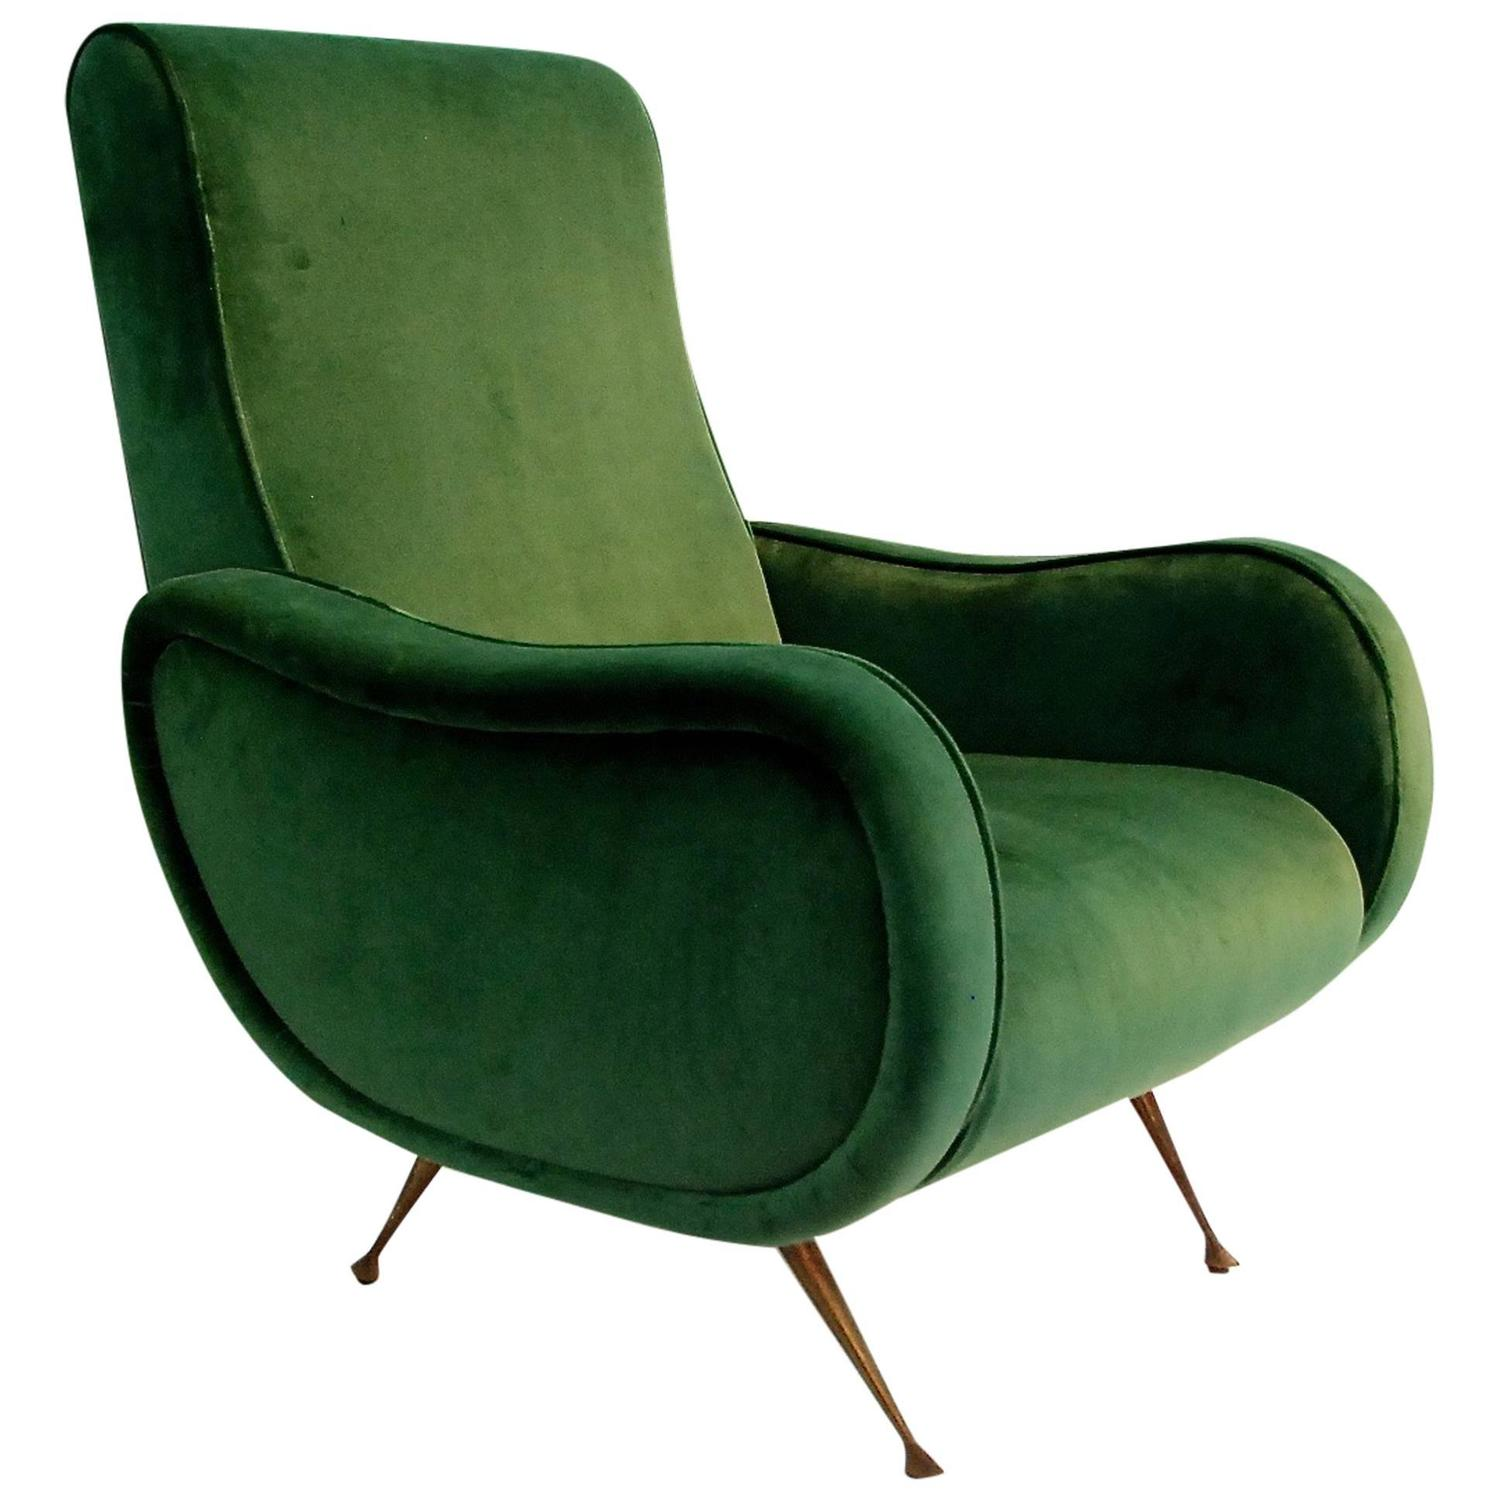 Marco zanuso lady chair at 1stdibs for Furniture armchairs